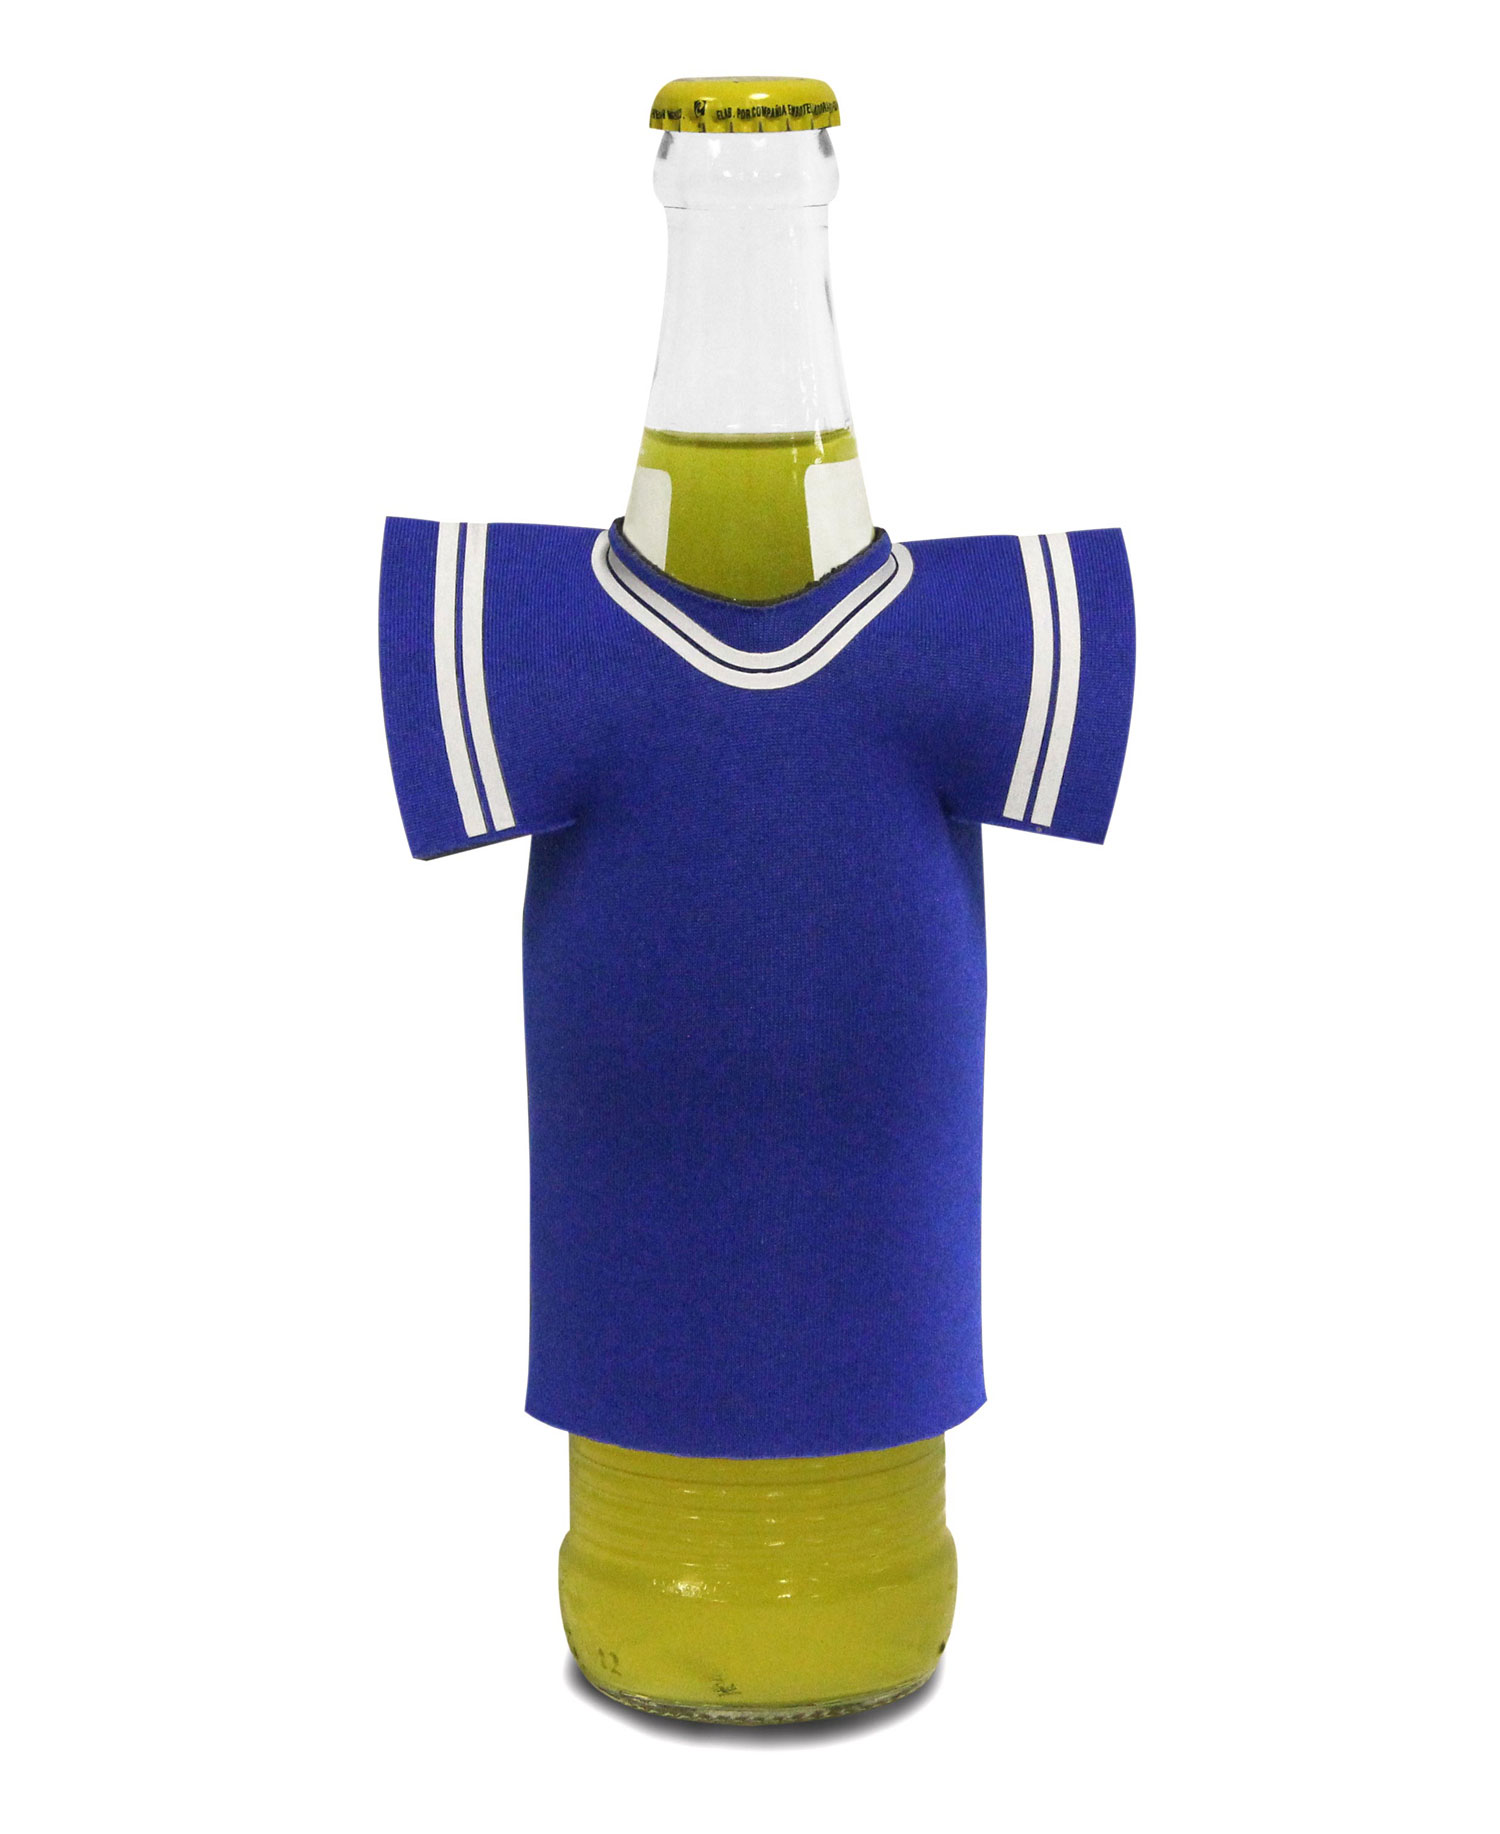 Liberty Bags - LBFT008 Jersey Foam Bottle Holder